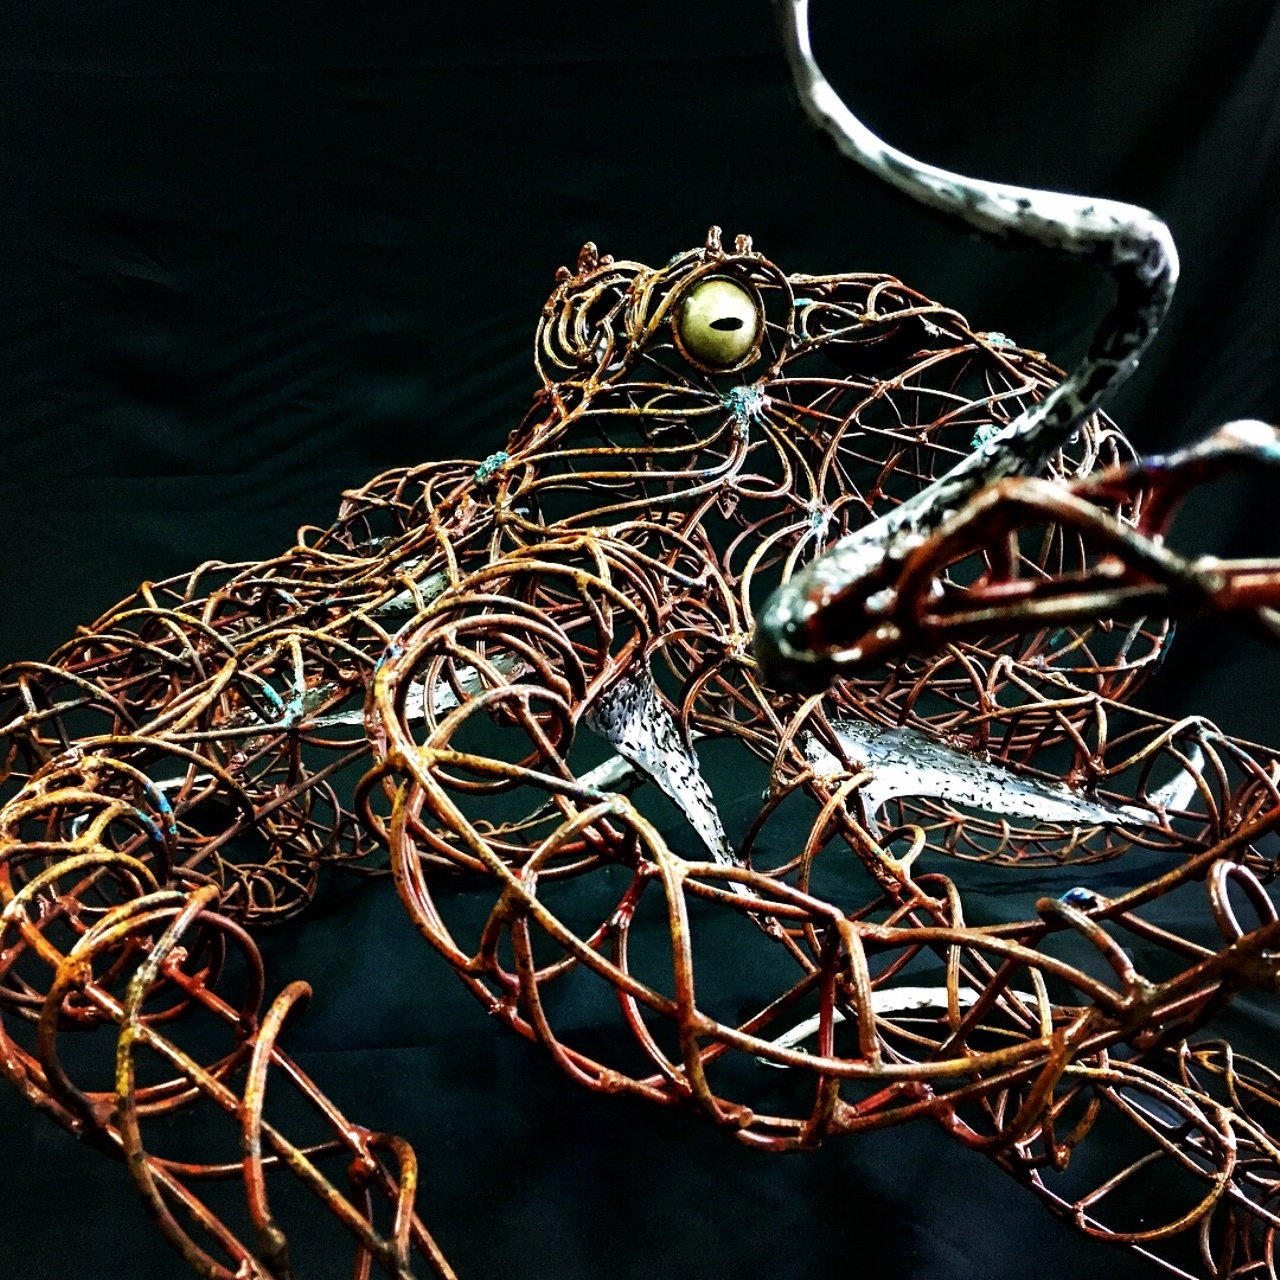 Steel octopus sculpture, acrylic paint by Rusty Croft.